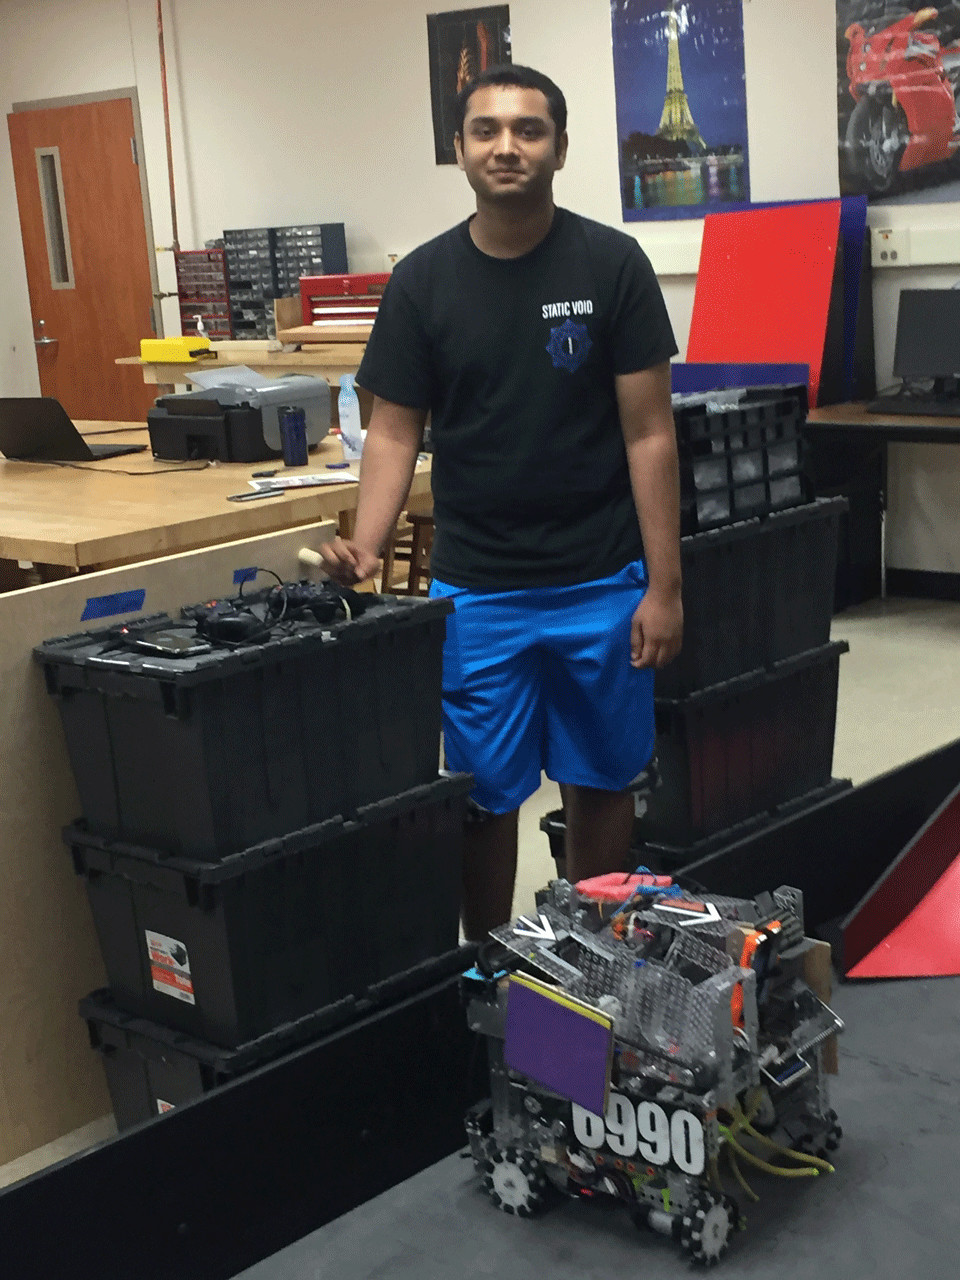 Photo by RICHARD LEGGITT/ Yash Chacharkar, 17, the assistant project manager for the Vista Ridge High School robotics team demonstrates the robot that helped the team win top honors at the University Interscholastic League state robotics championships.